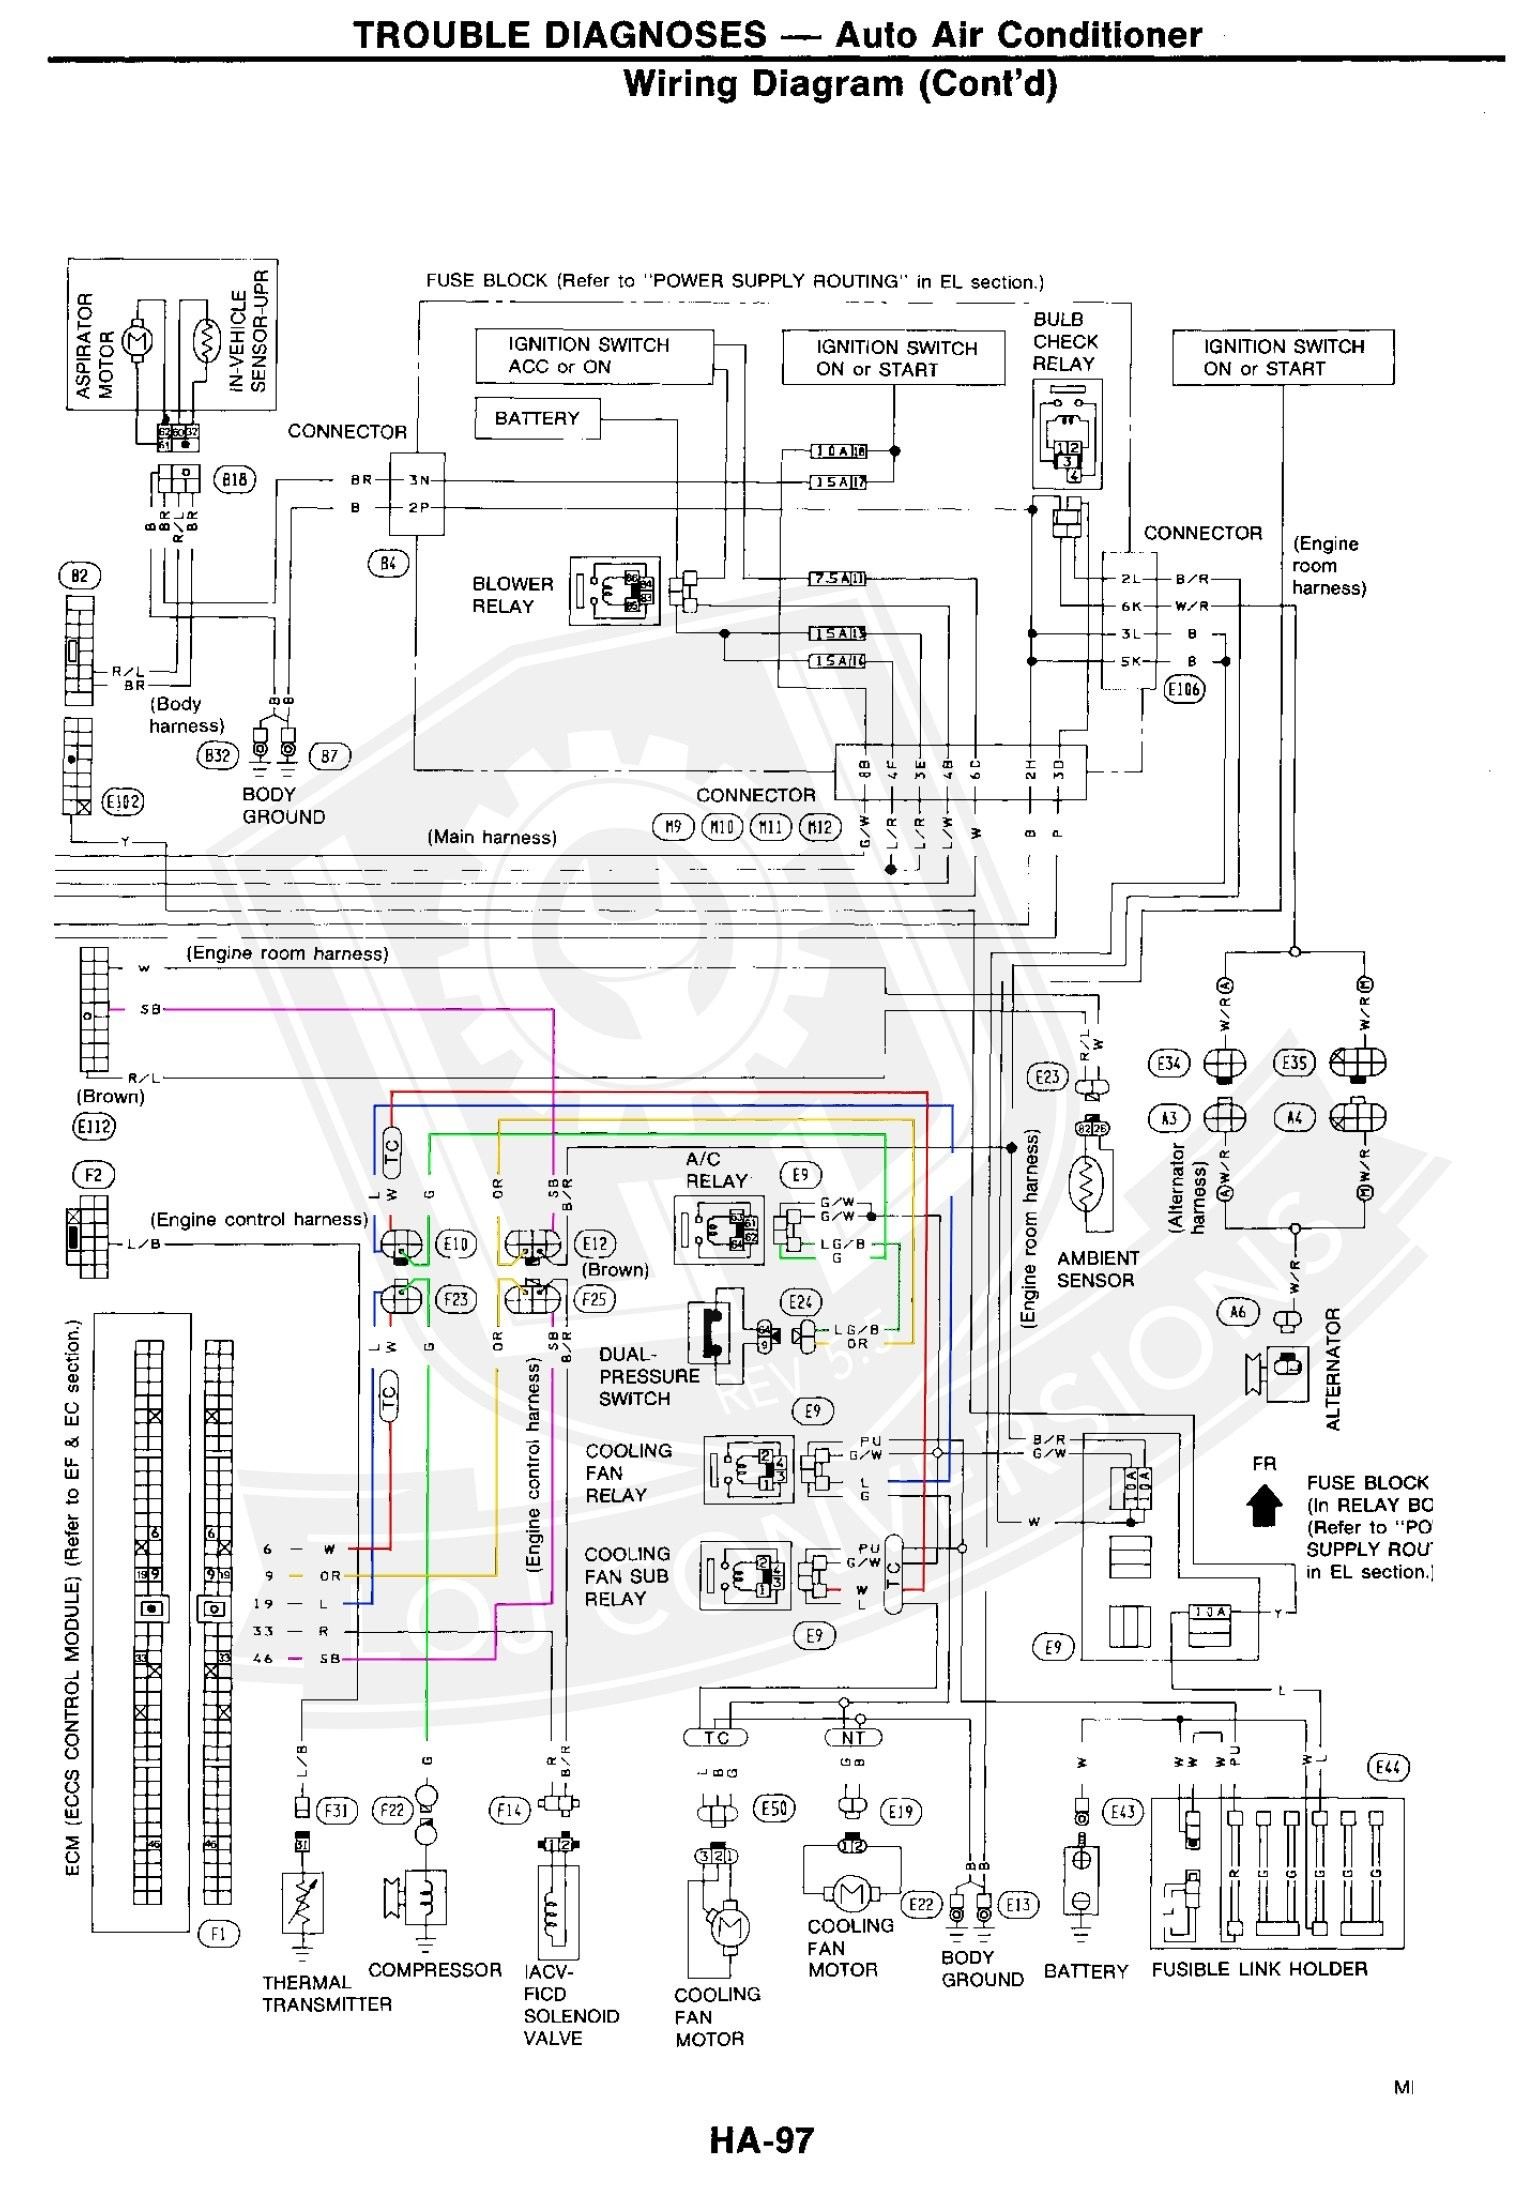 1990 nissan 300zx wiring diagram wire center u2022 rh onzegroup co nissan 300zx wiring diagram nissan 300zx wiring diagram